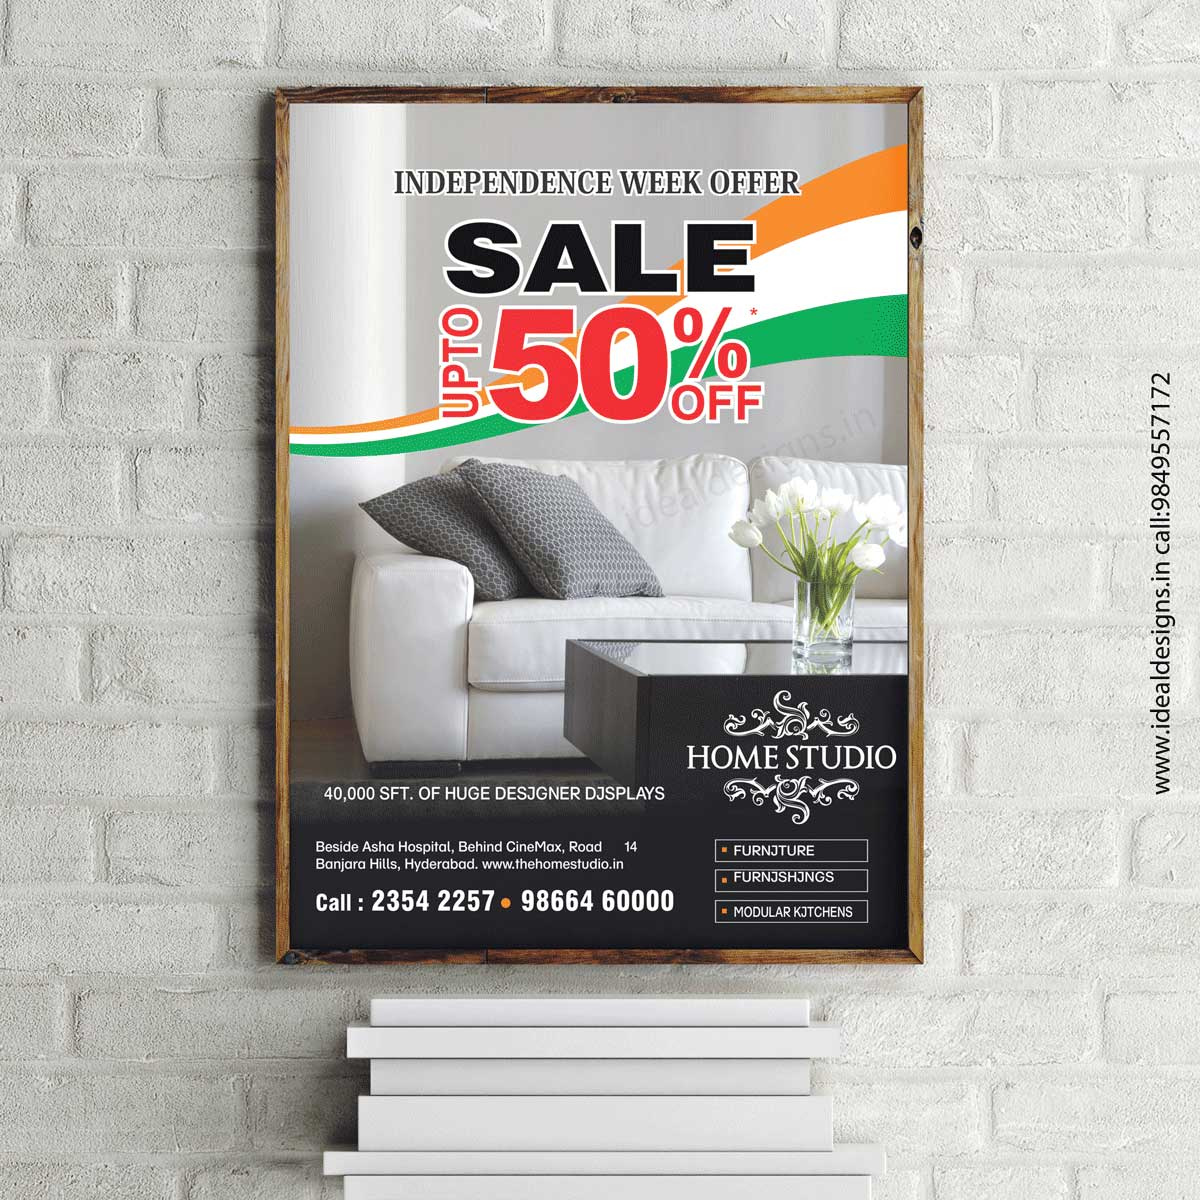 Furniture showroom Poster Design, Poster and Flyer Design india, Graphic Design company in hyderabad – homestudio